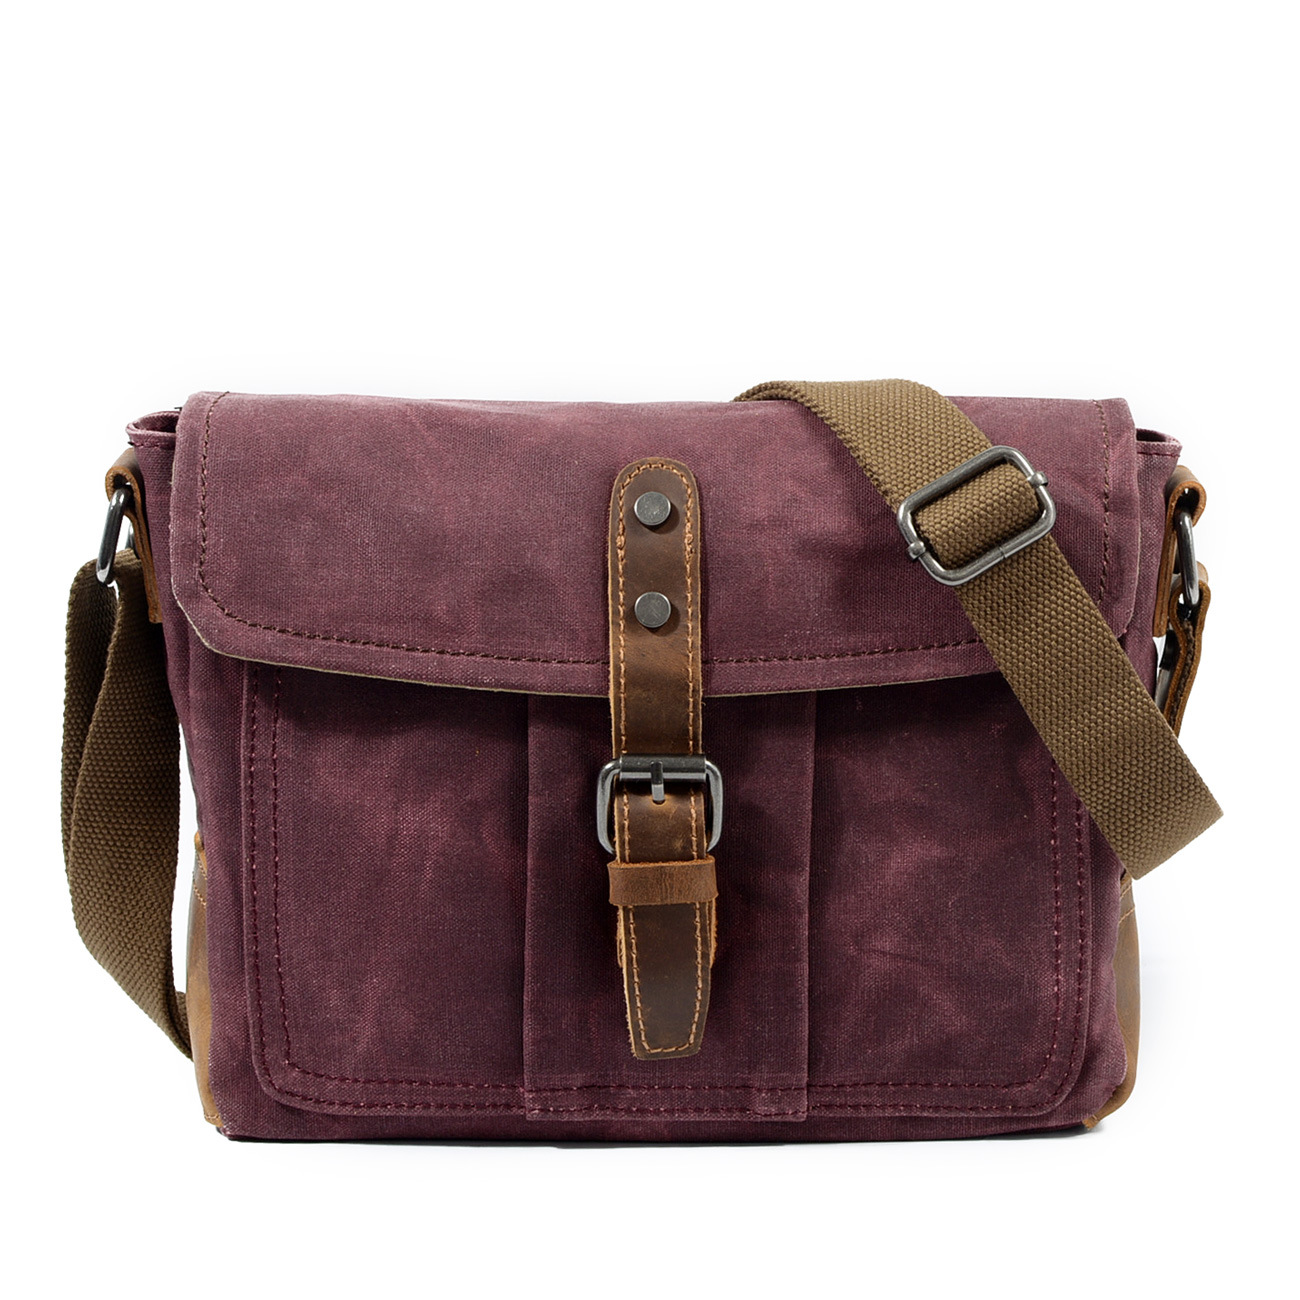 MCO 2018 Vintage Waxed Canvas Messenger Bag For Men Military Male Travel  Crossbody Bag Waterproof Basic Business Shoulder Bags-in Crossbody Bags  from ... 14aff8e3c1bb9